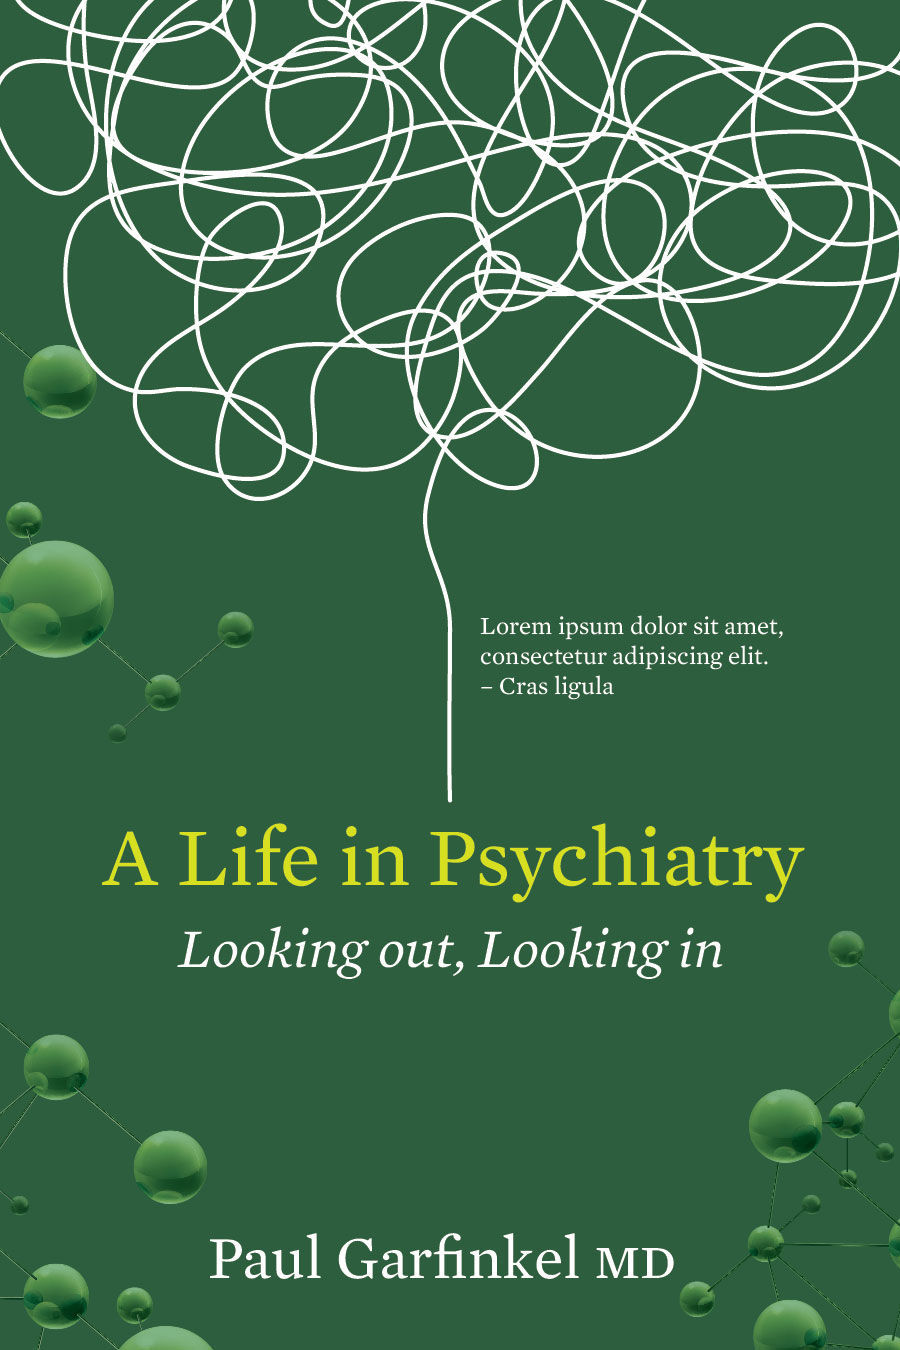 A Life in Psychiatry